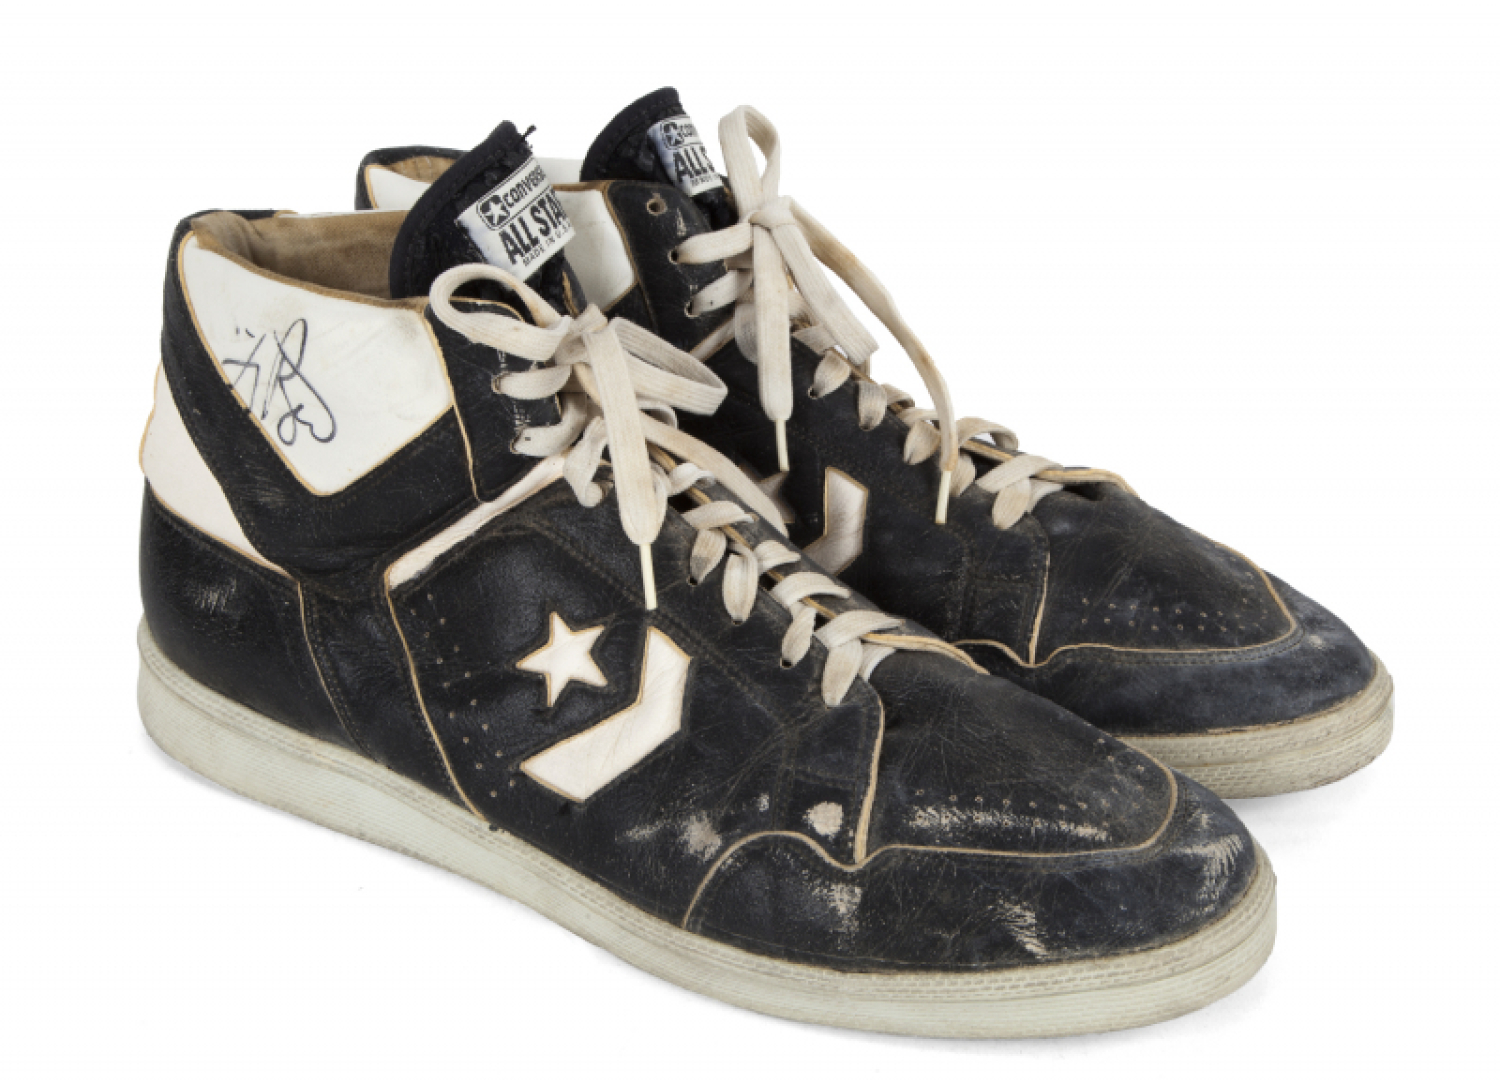 LARRY BIRD GAME WORN AND SIGNED SHOES